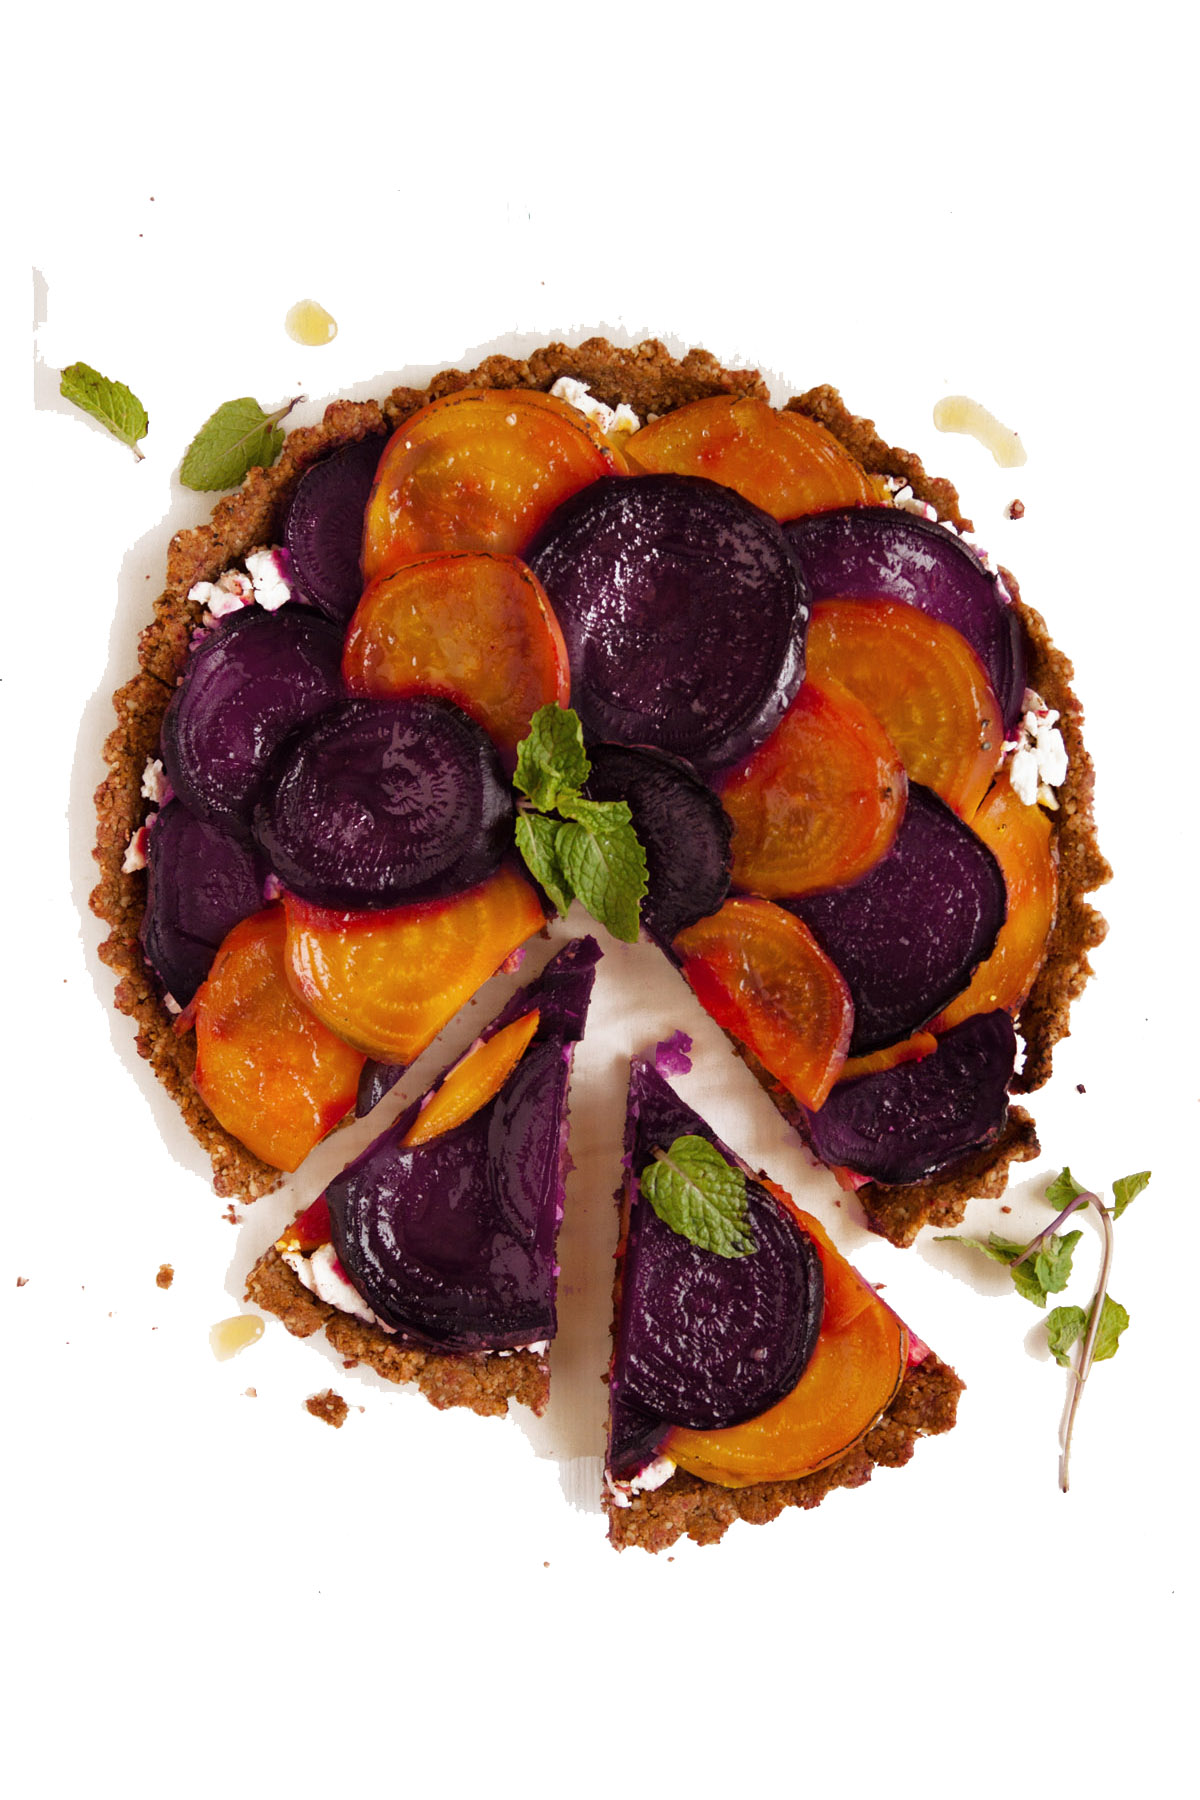 Roasted Beet Tart with Walnut Crust